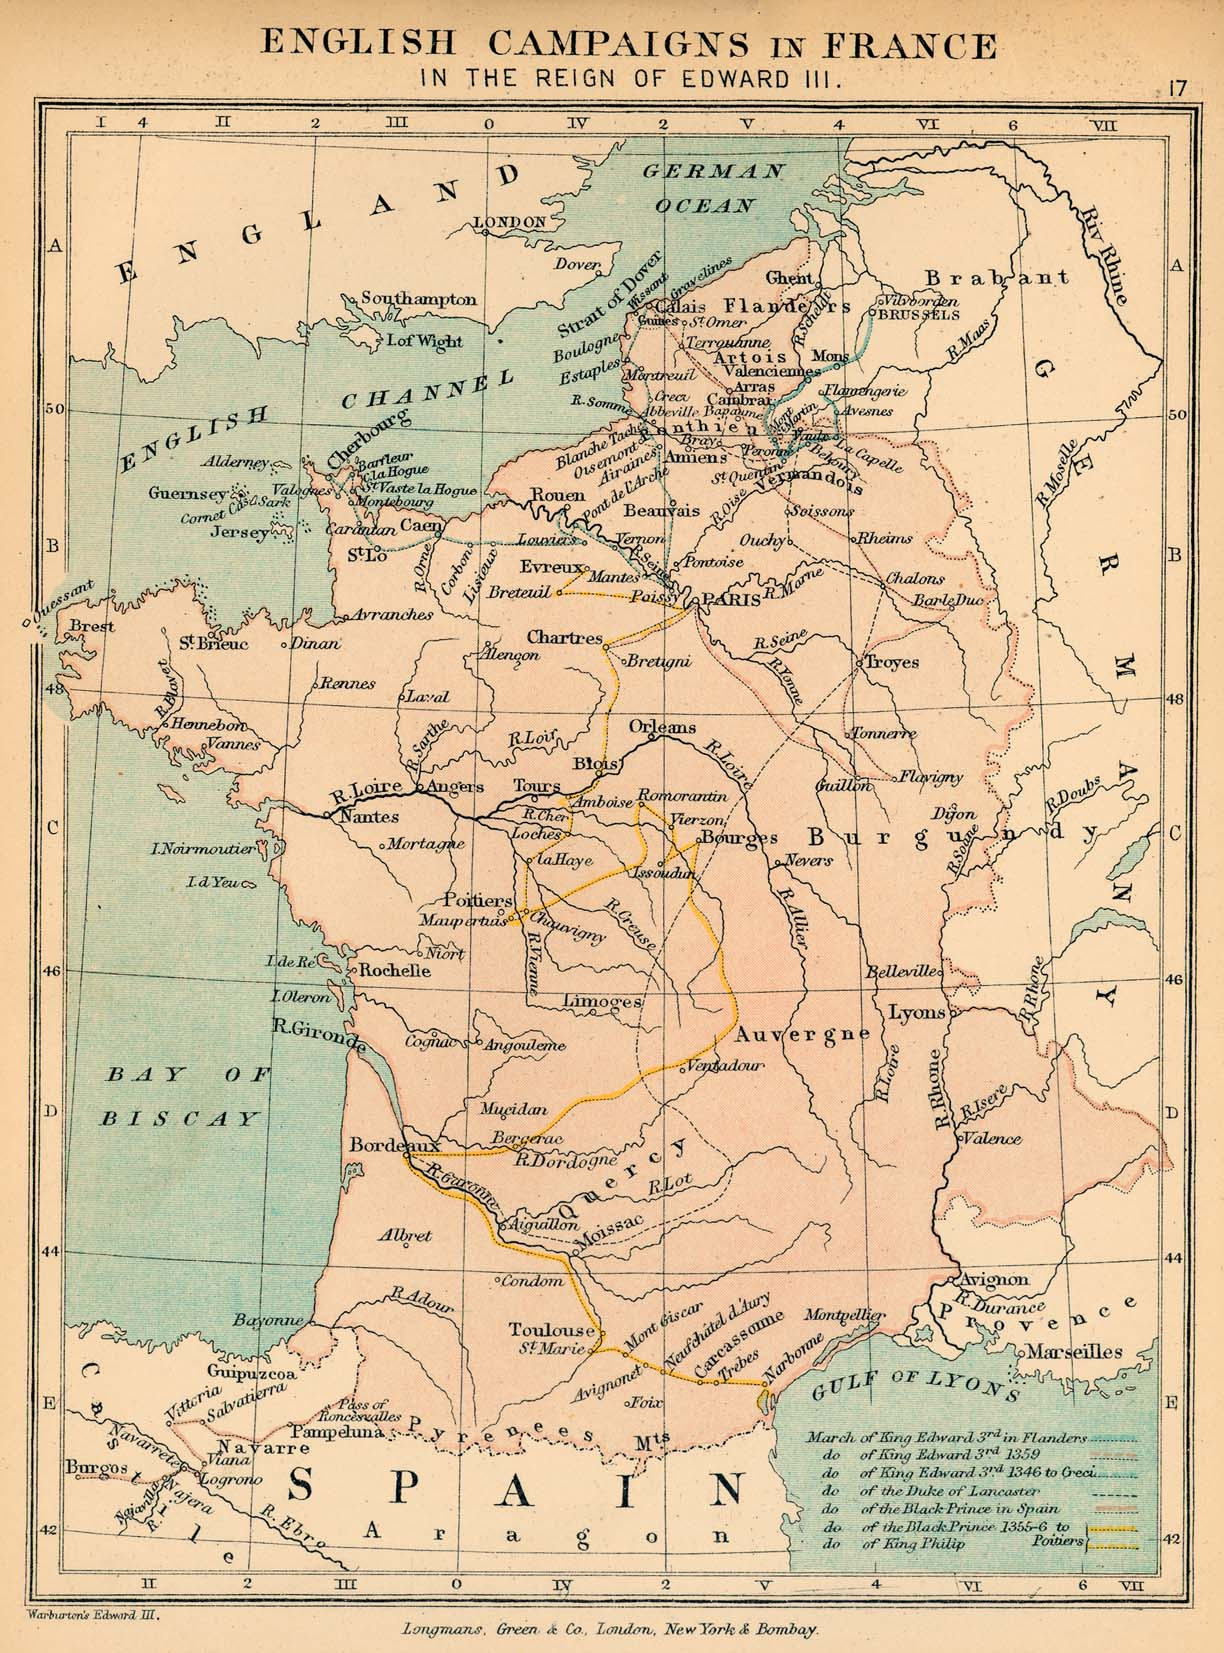 Map of English Campaigns in France in the Reign of Edward III